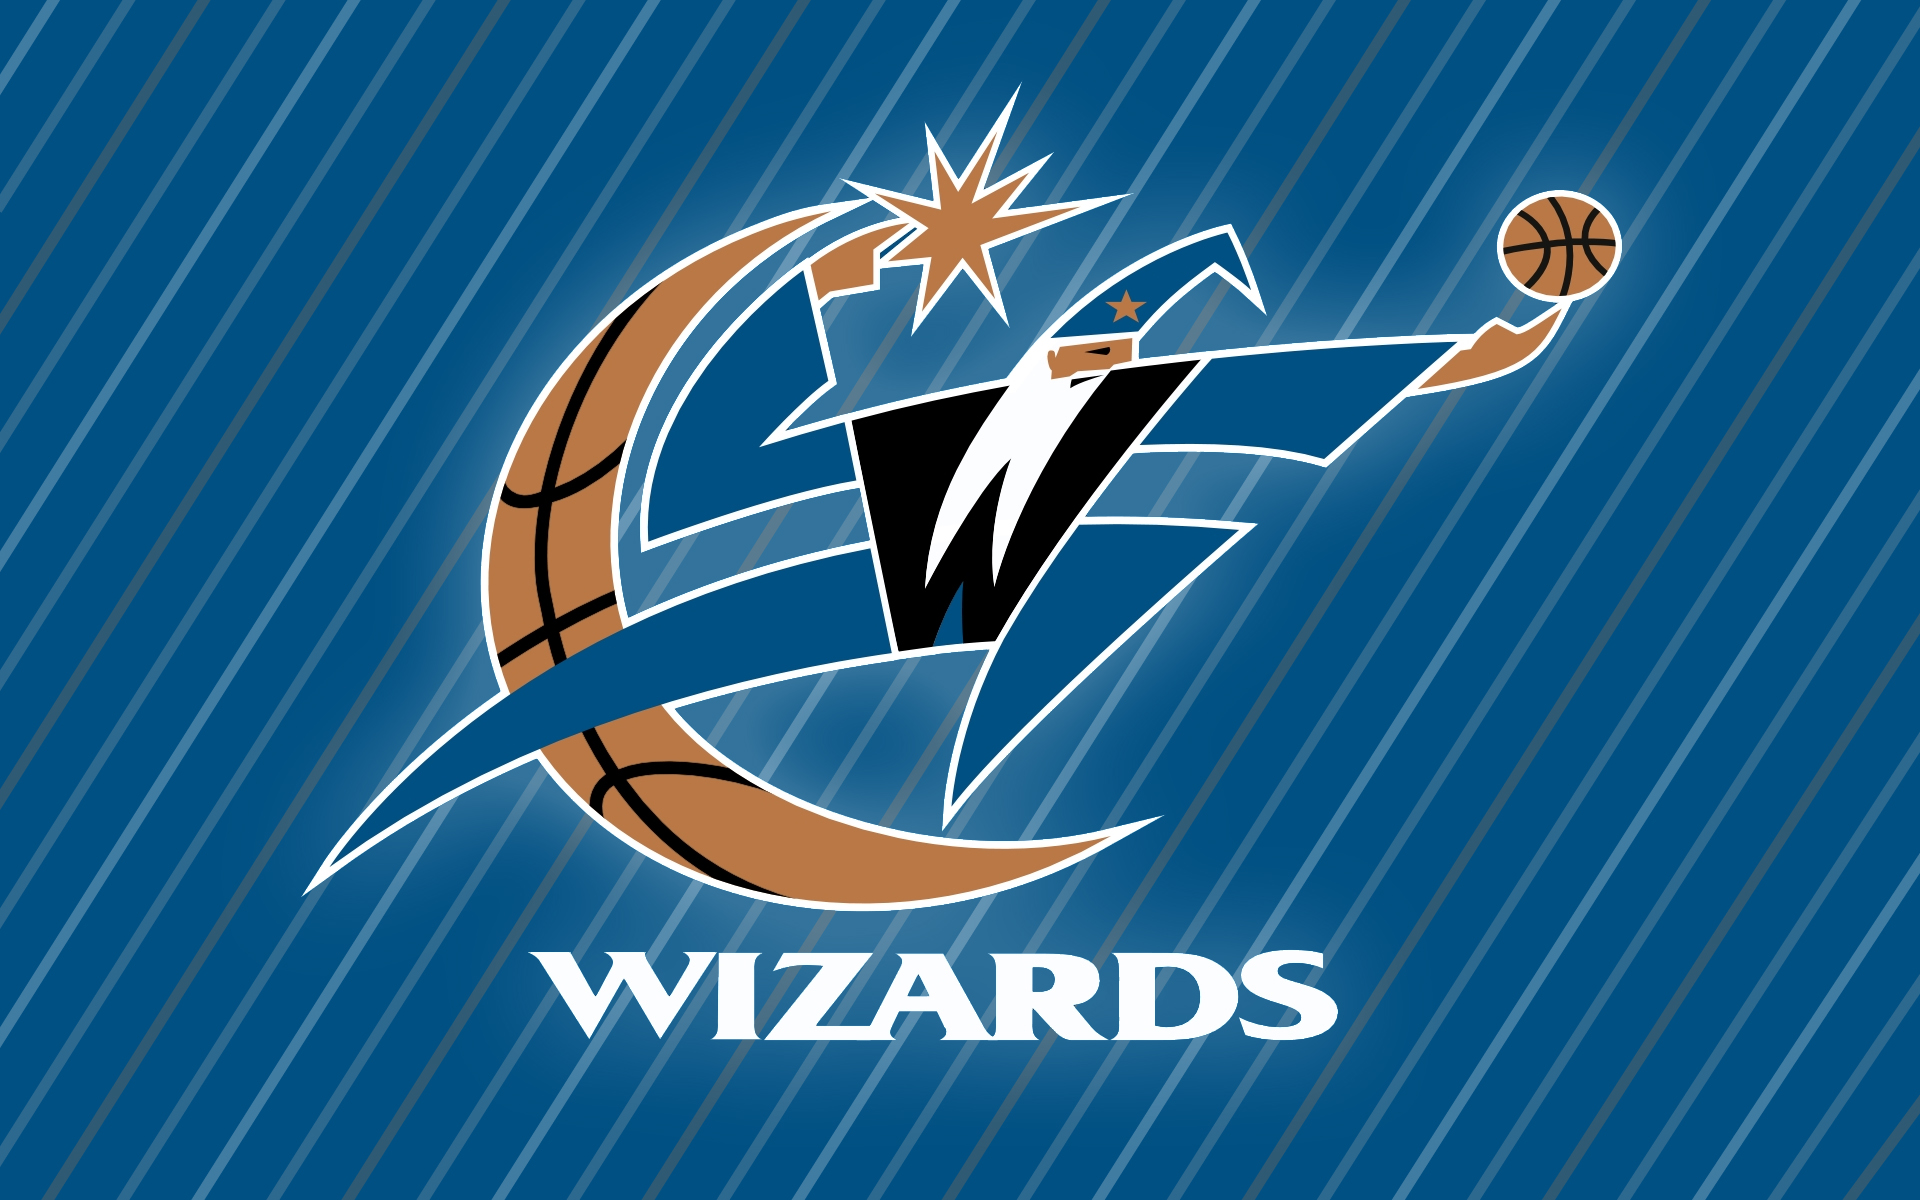 Washington Wizards Logo By RMTip21 1920 x 1200 1024 x 640 1920x1200